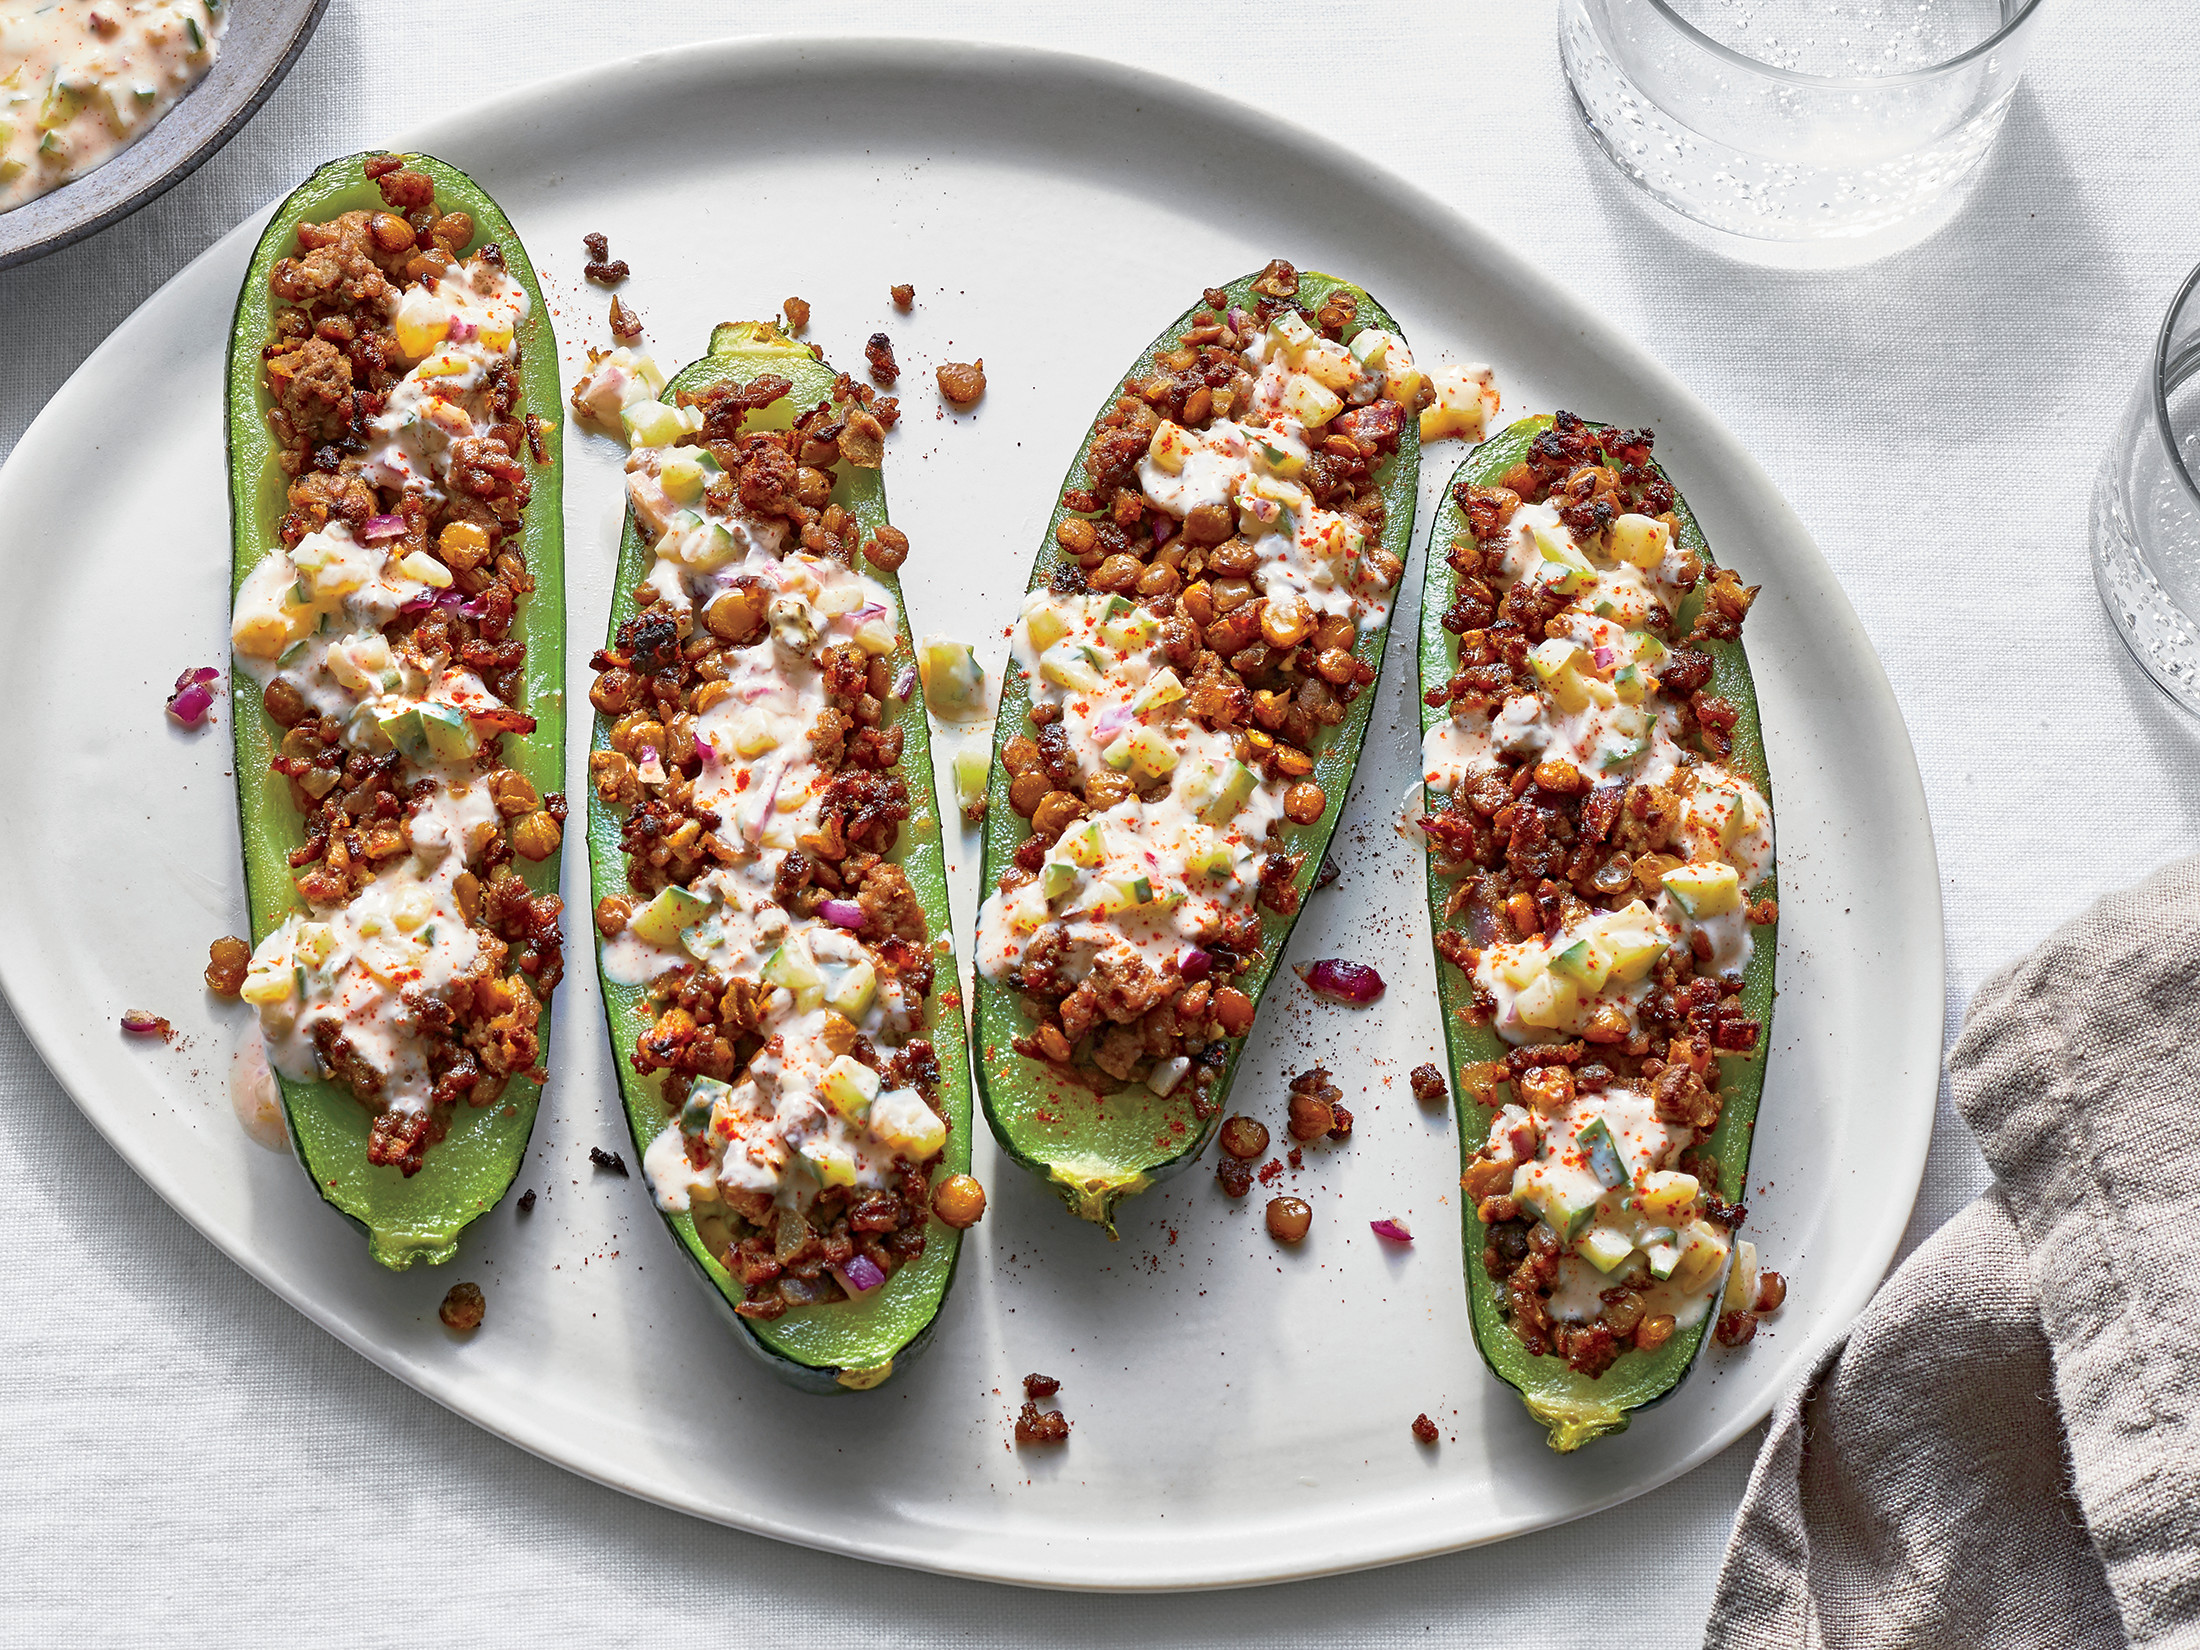 Zucchini Stuffed With Lamb and Lentils